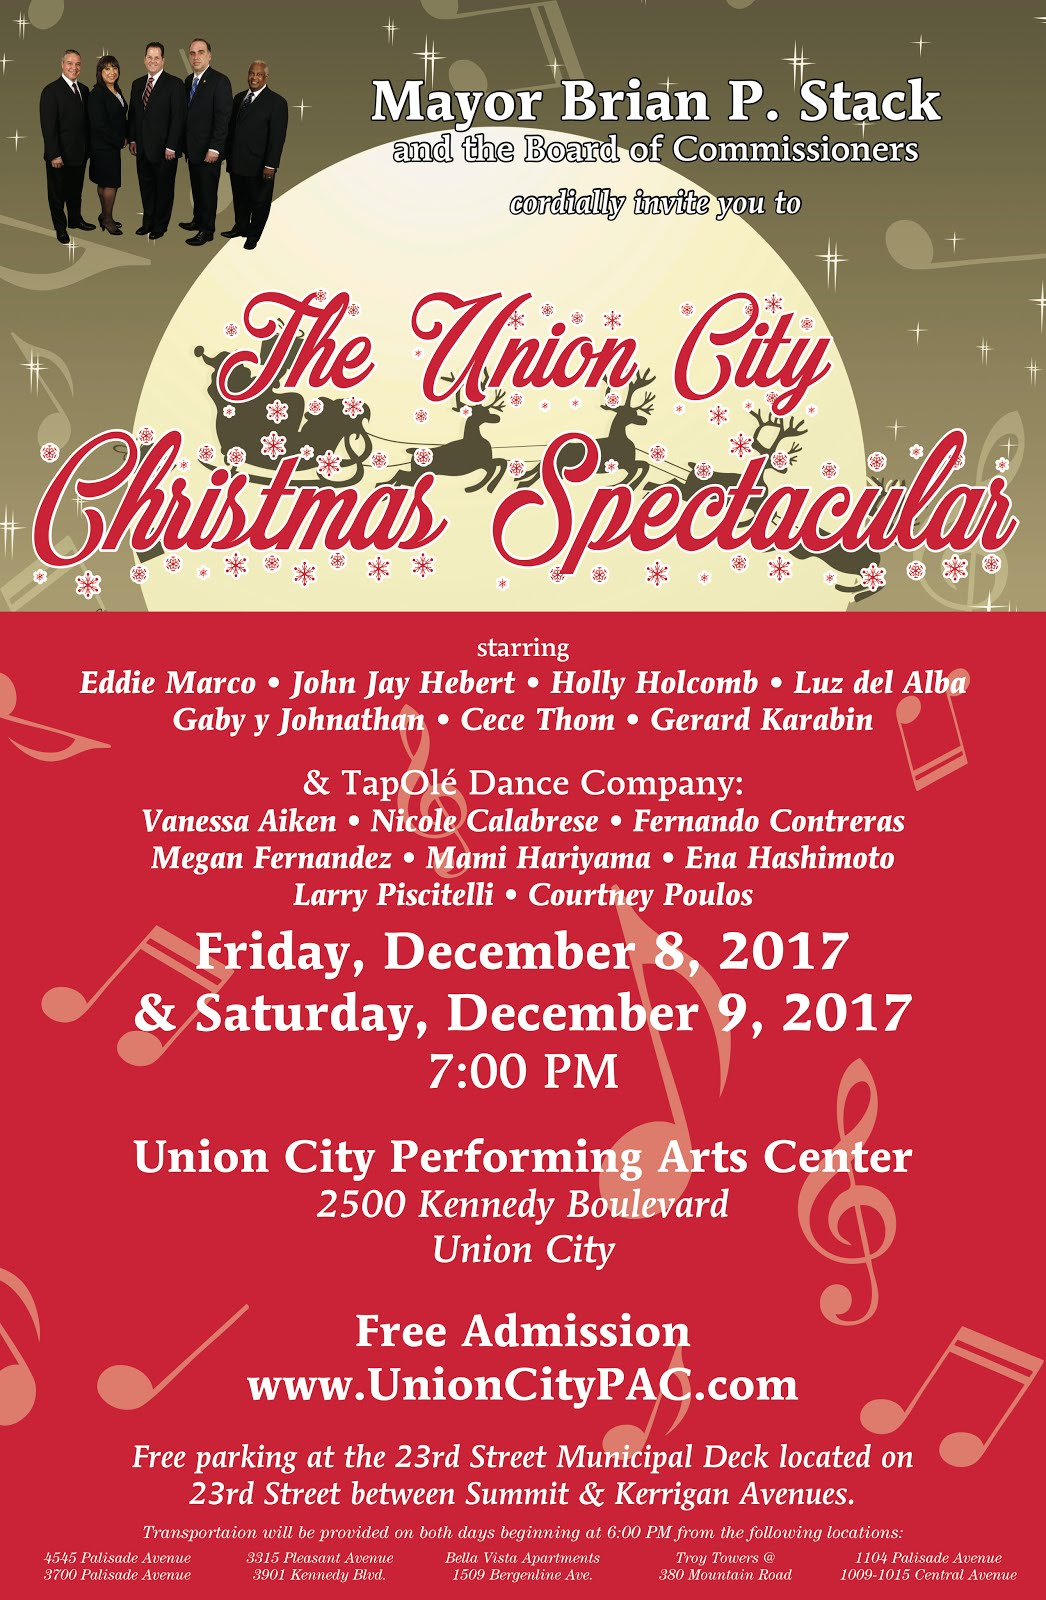 The Union City Christmas Spectacular